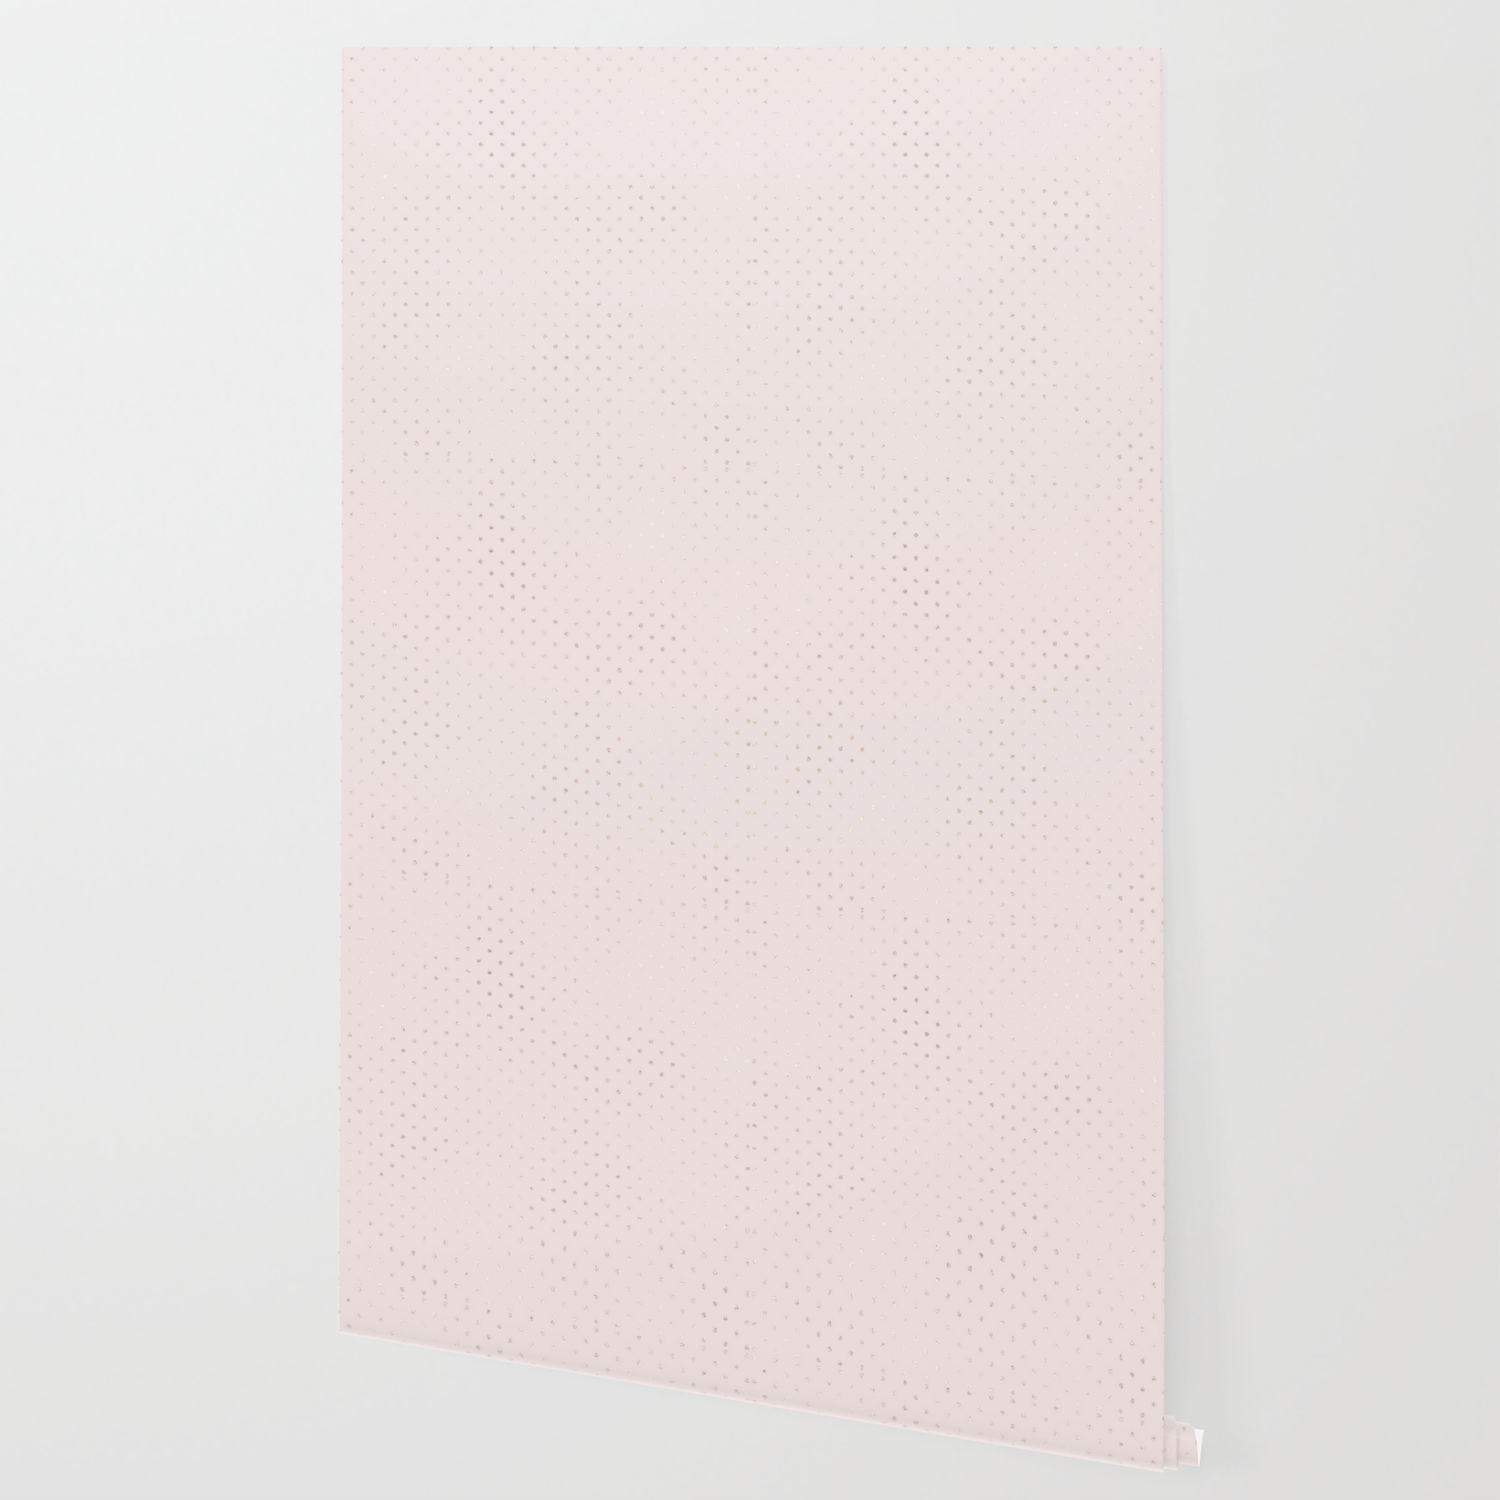 Trendy Girly Blush Pink Rose Gold Glitter Polka Dots Wallpaper